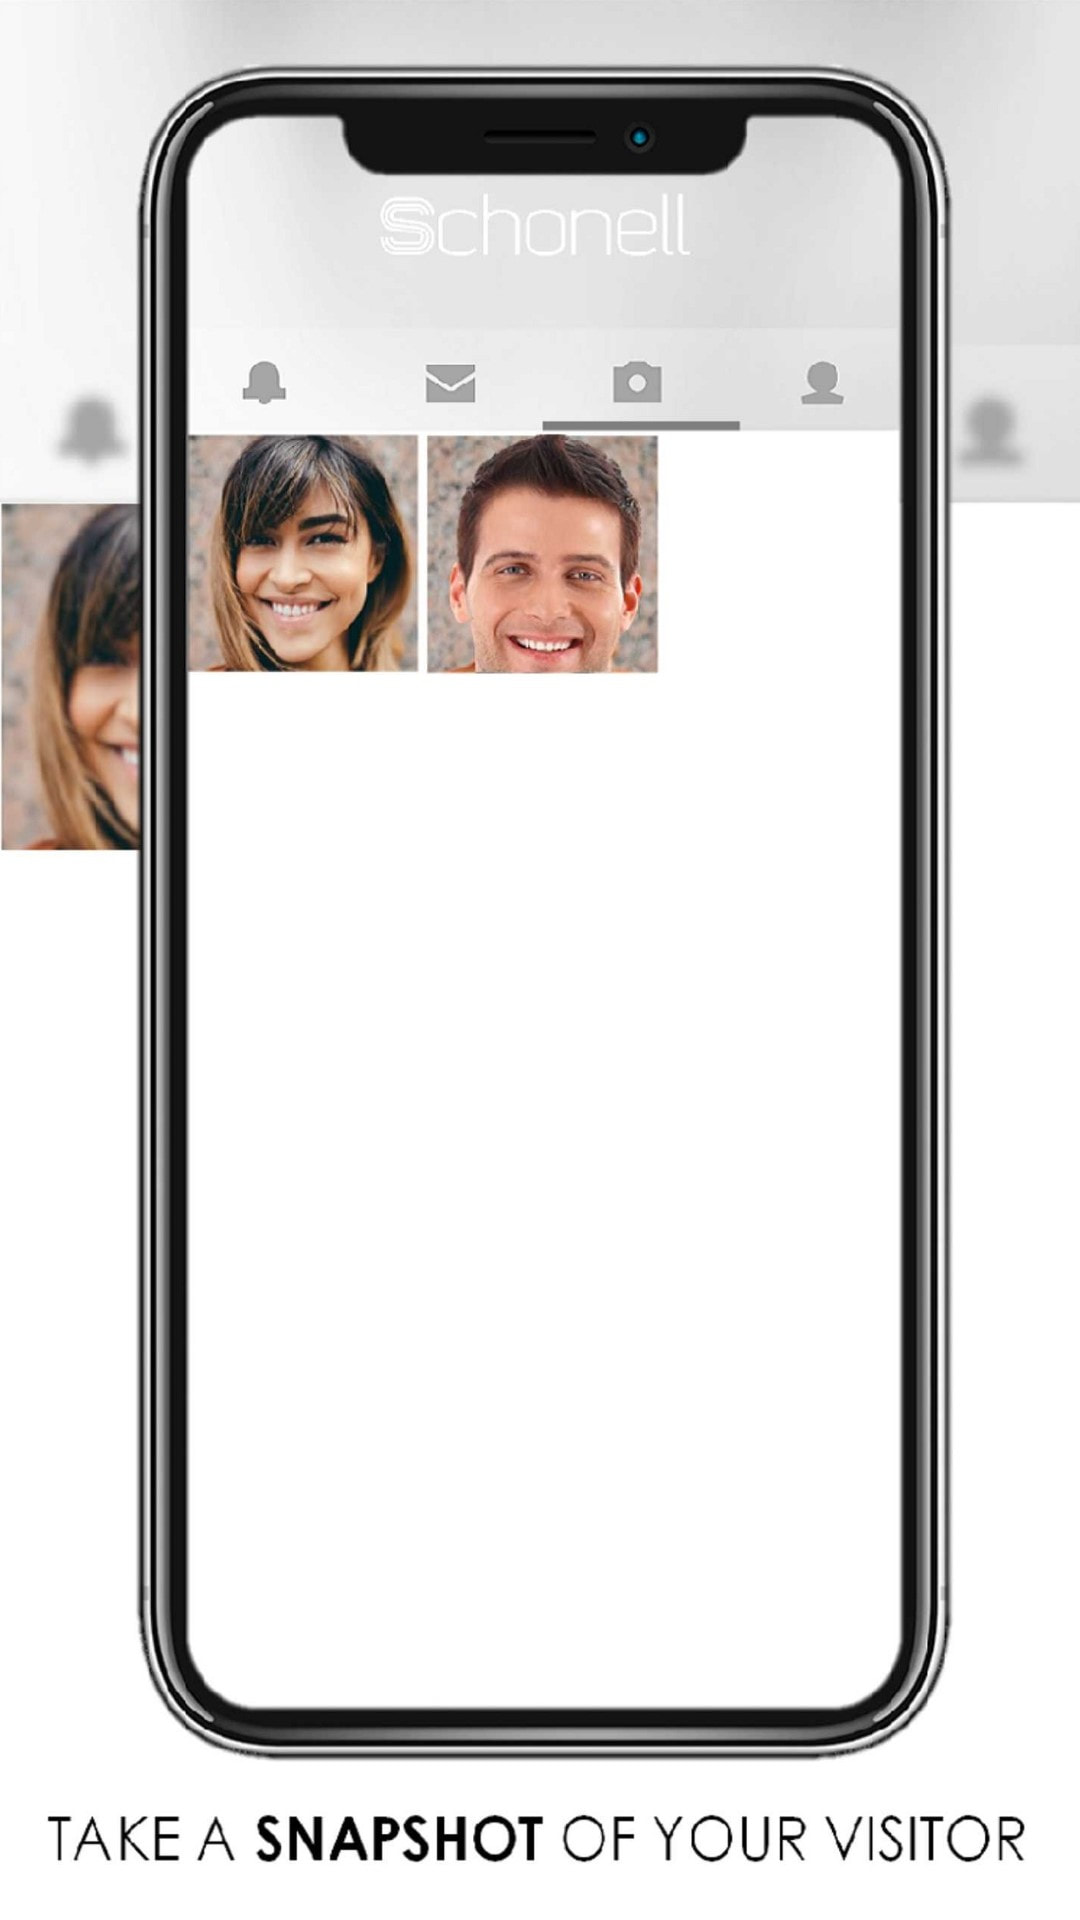 Schonell App: Log in Page | Video Calls